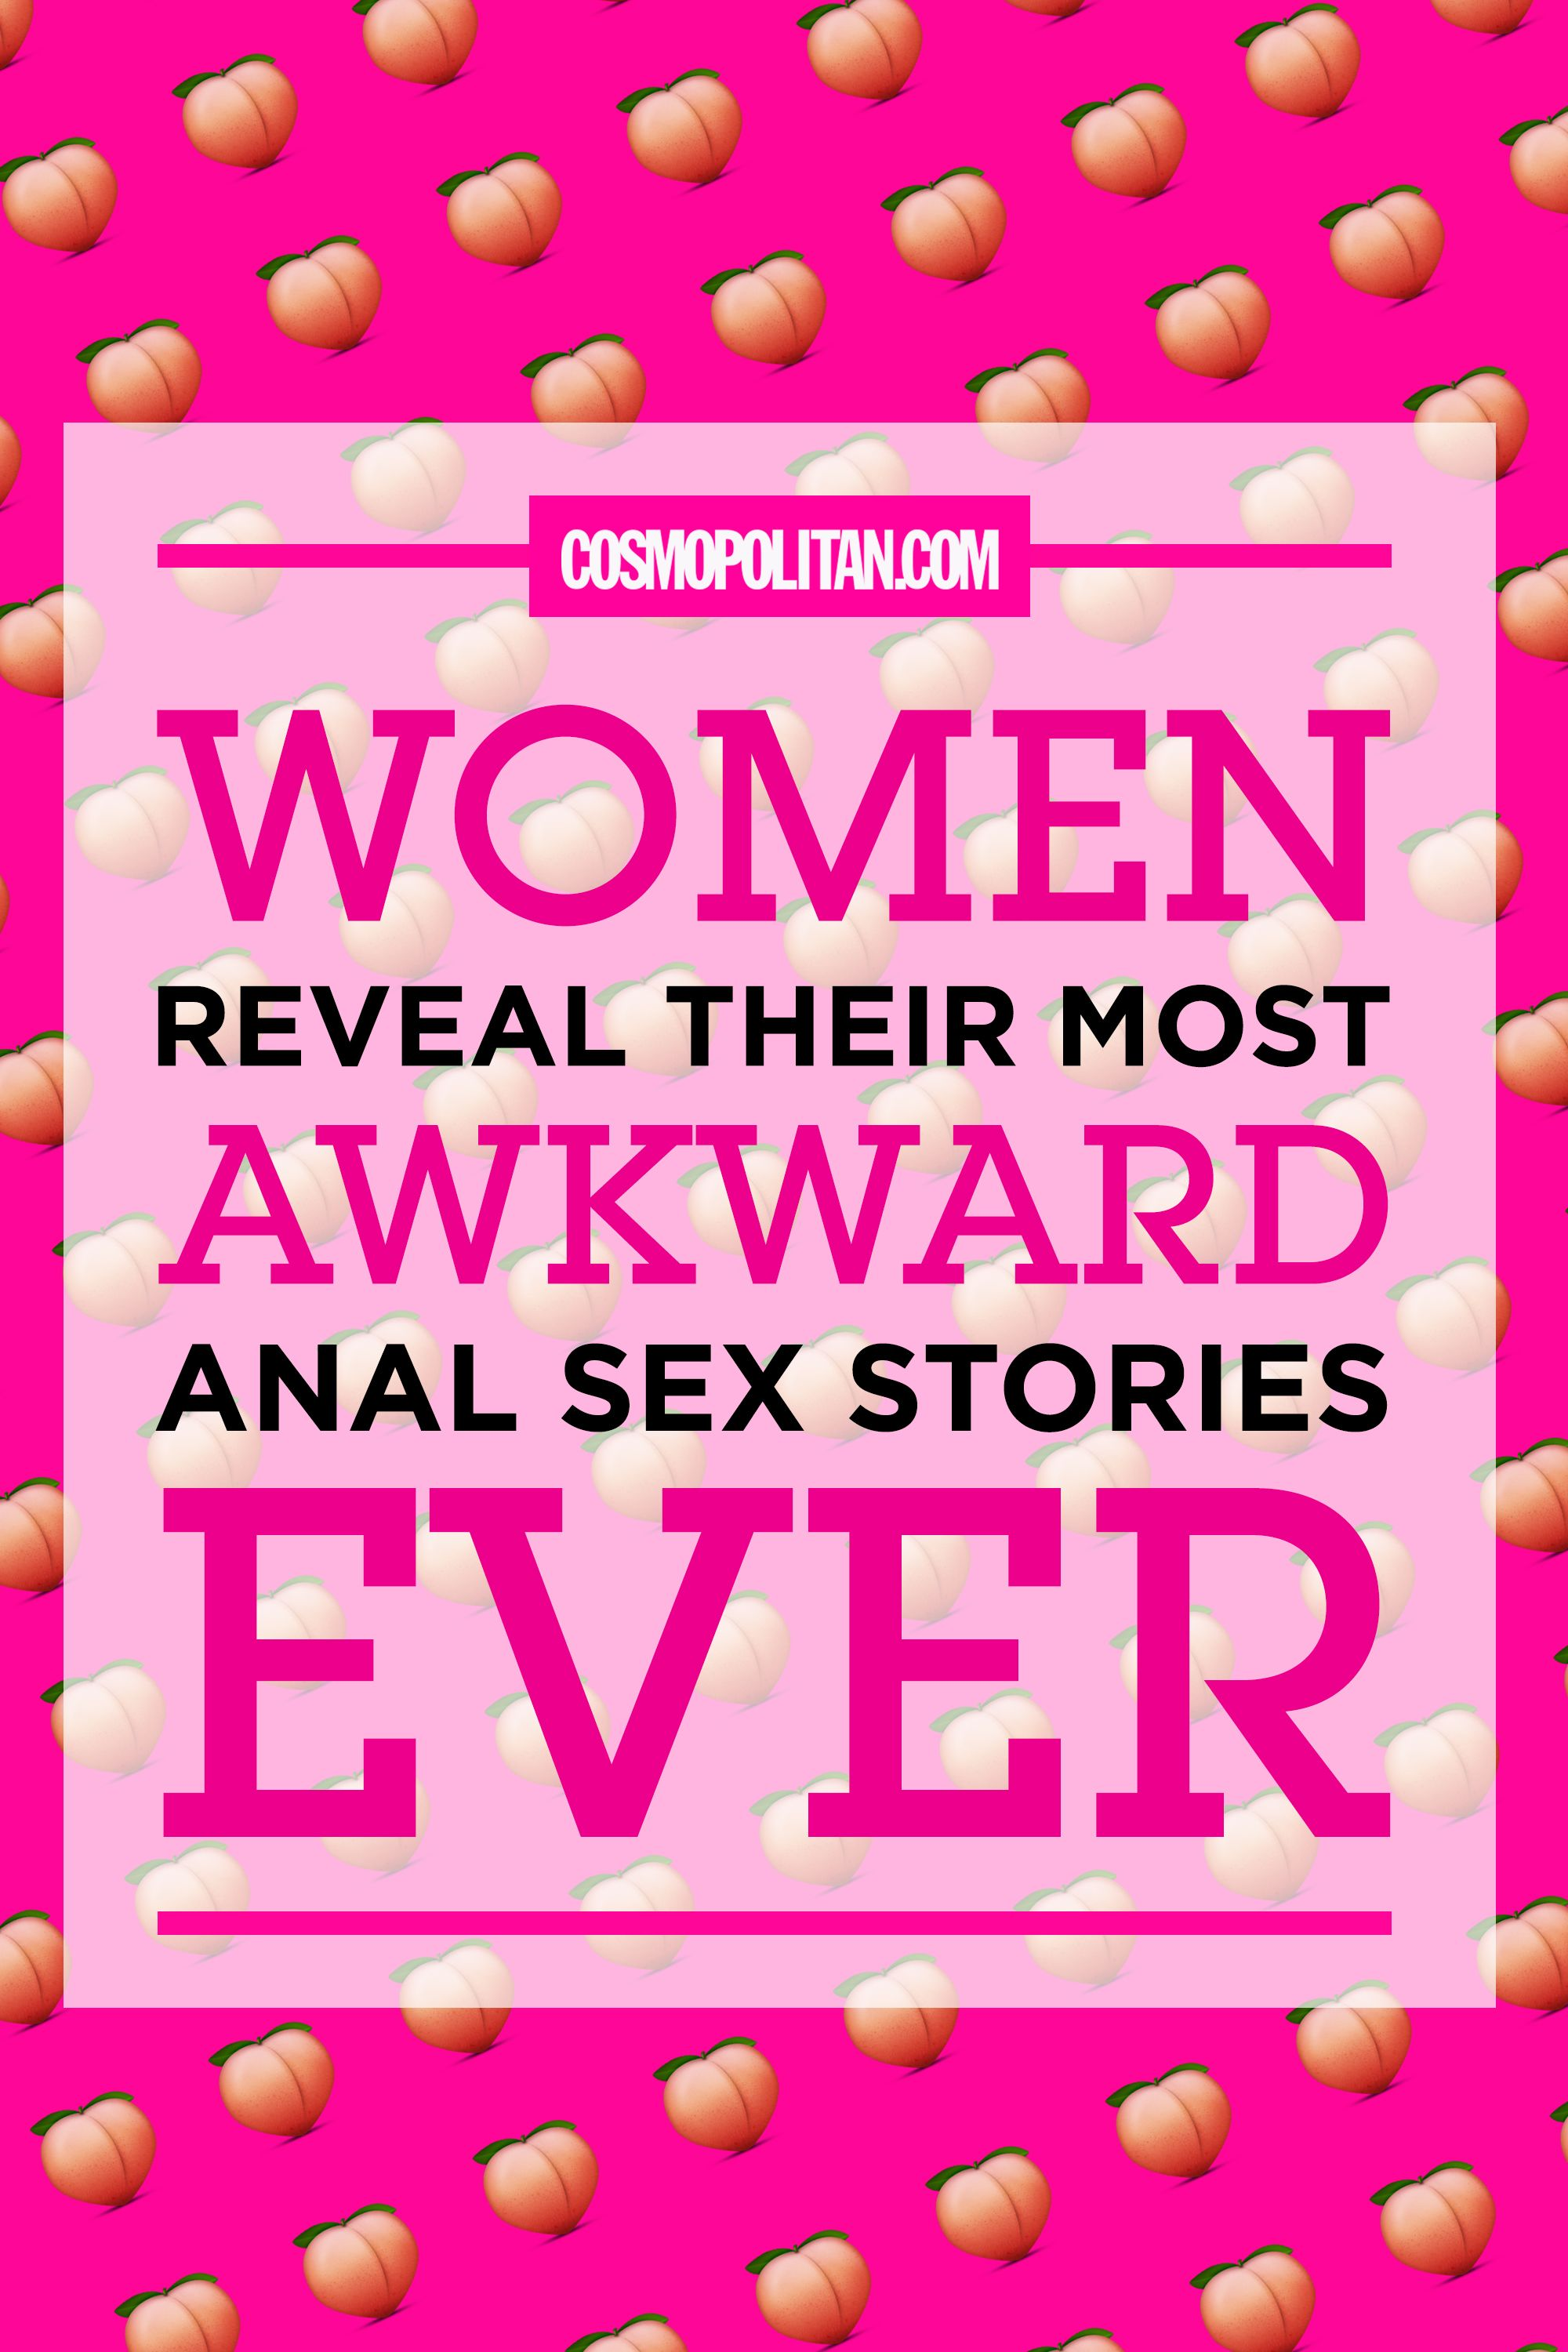 Anal sex stories with pictures